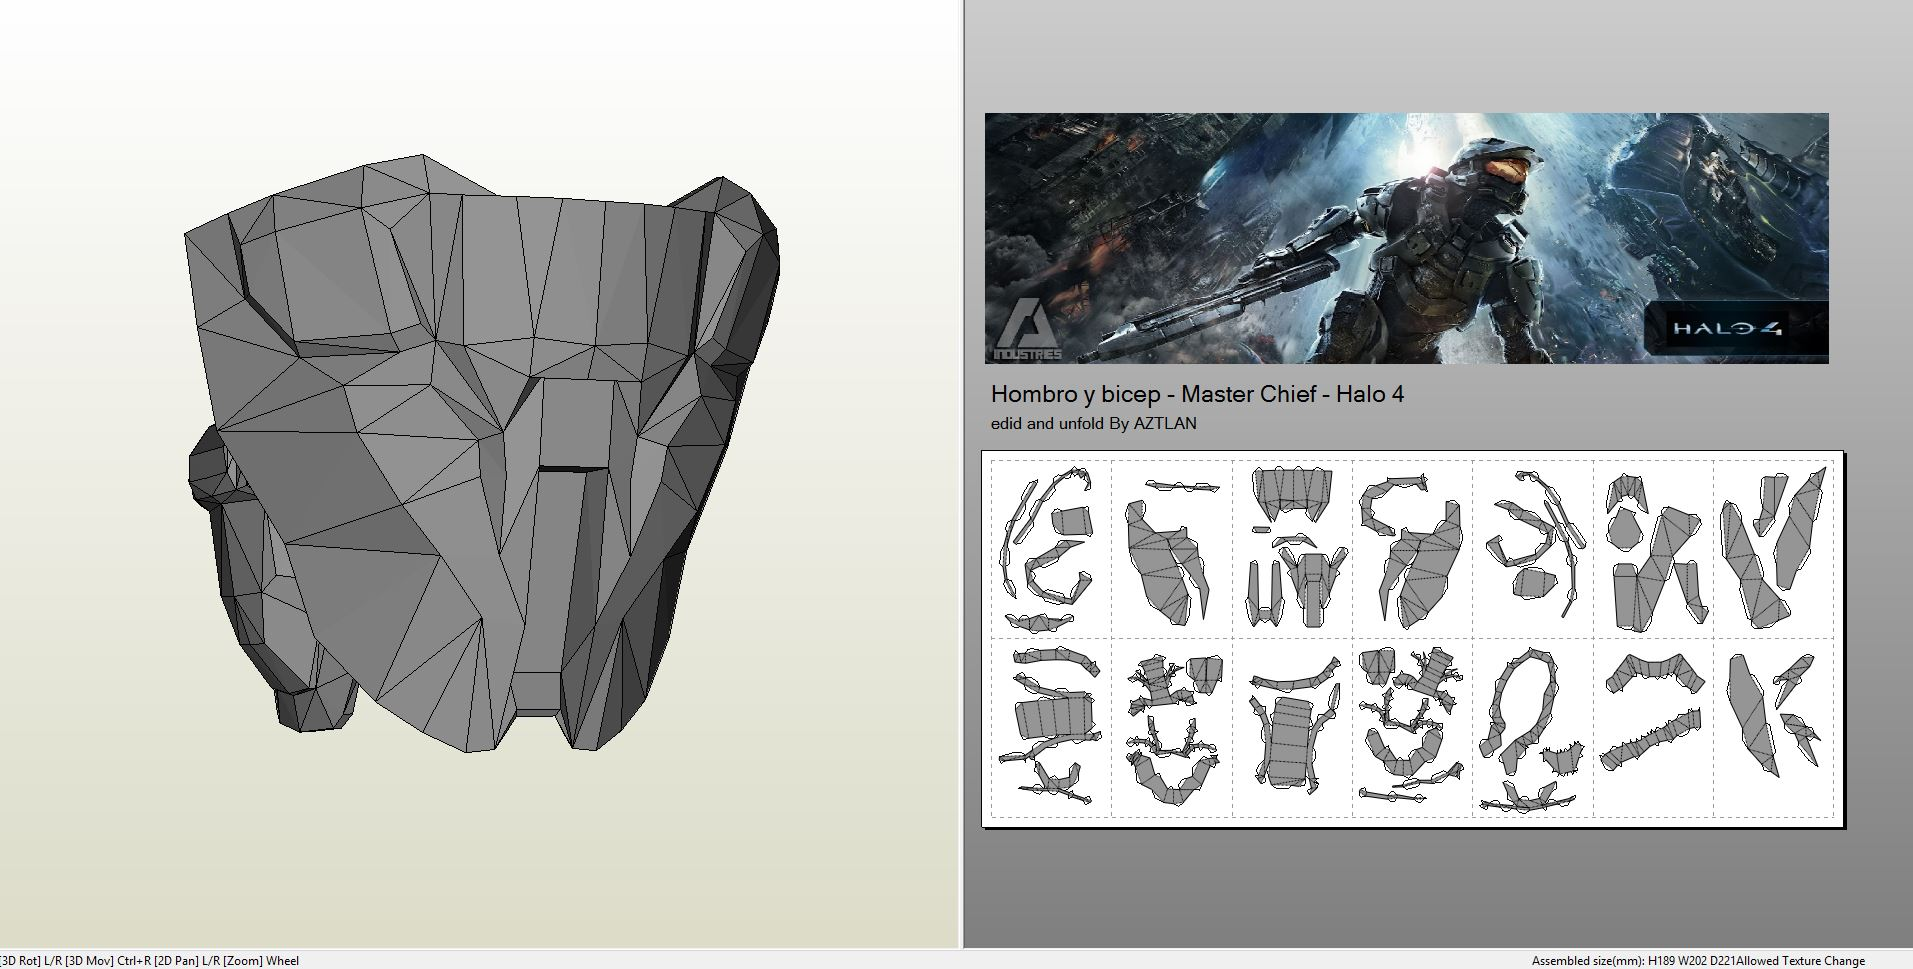 Papercraft  pdo file template for Halo 4 – Masterchief FULL